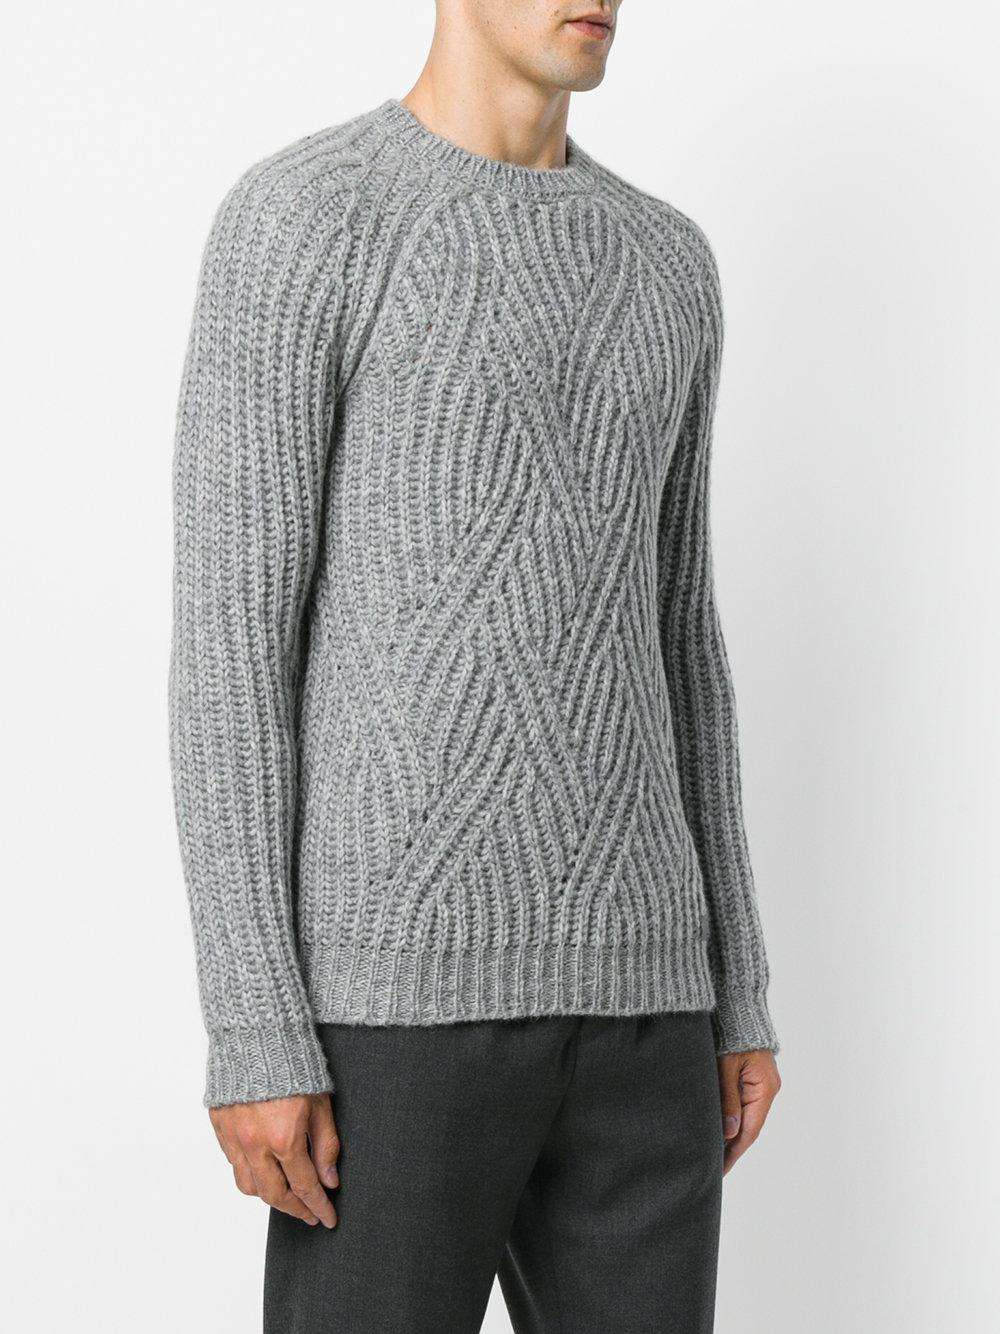 Tod's Synthetic Crew Neck Jumper in Grey (Grey) for Men